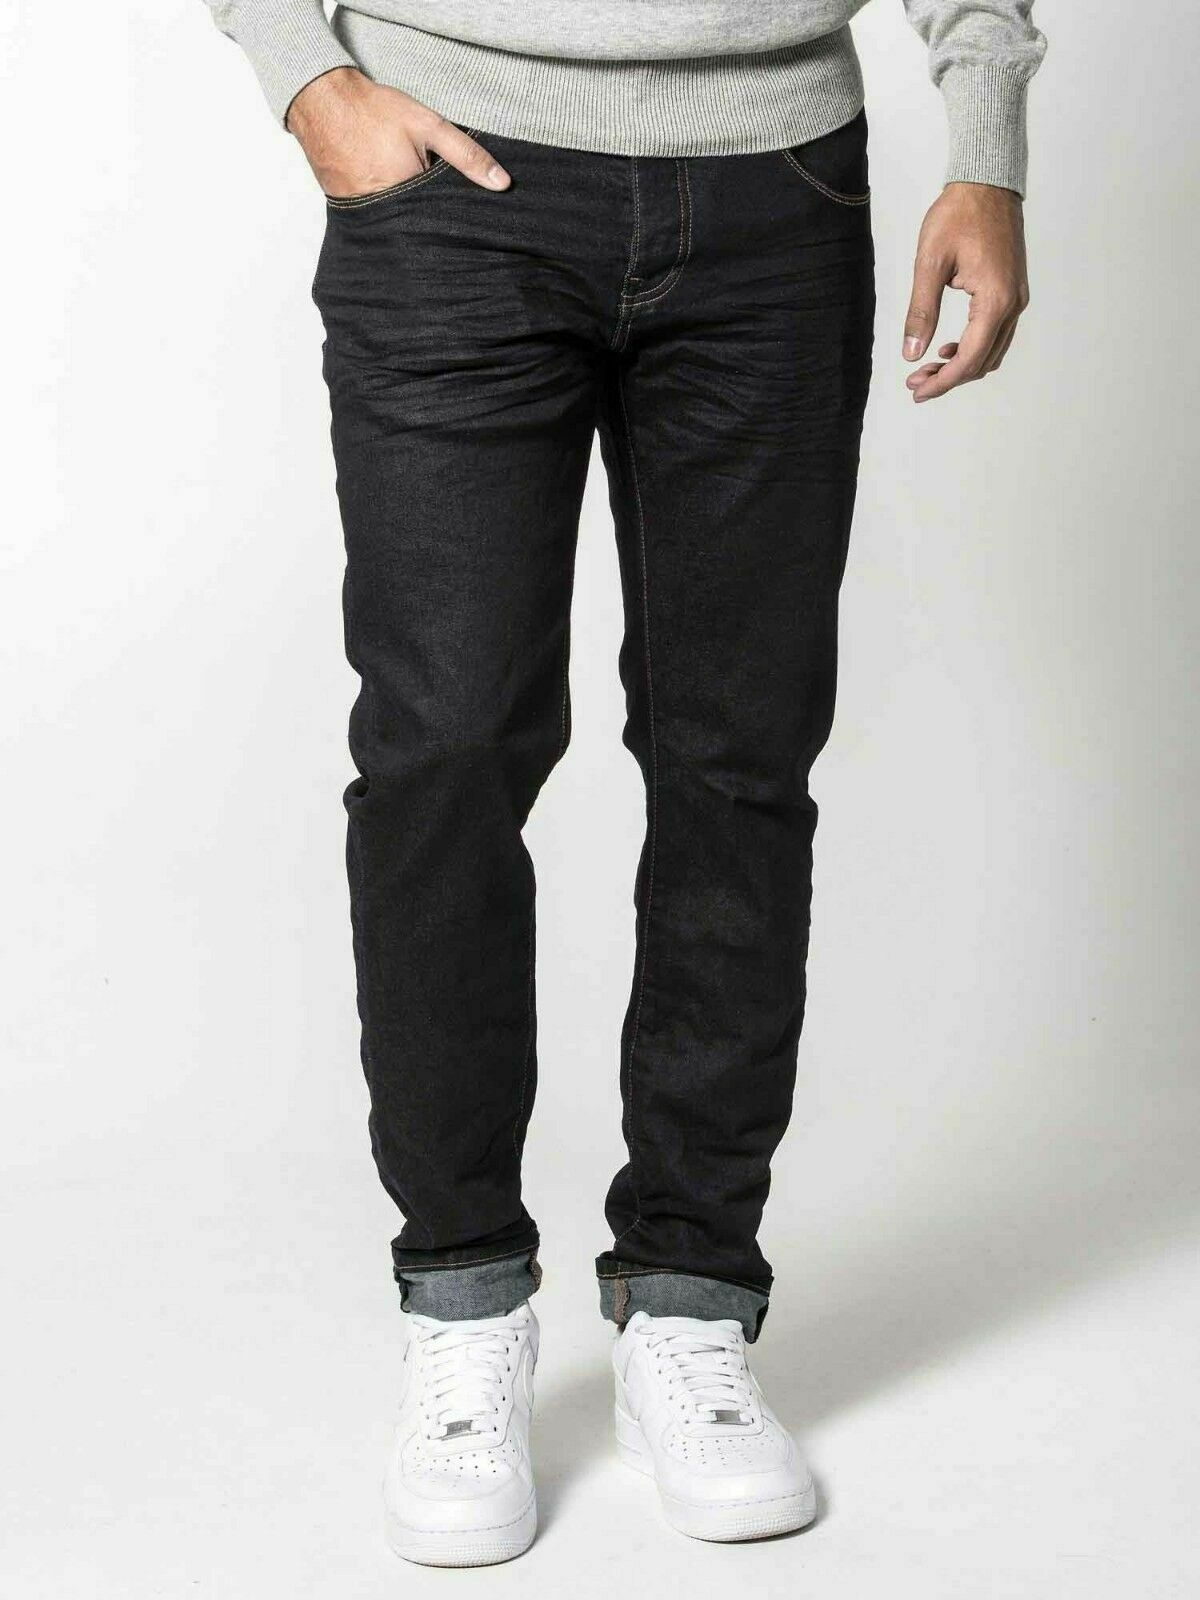 883 Police Men/'s Aivali Twisted Button Fly Denim Jeans Washed Black